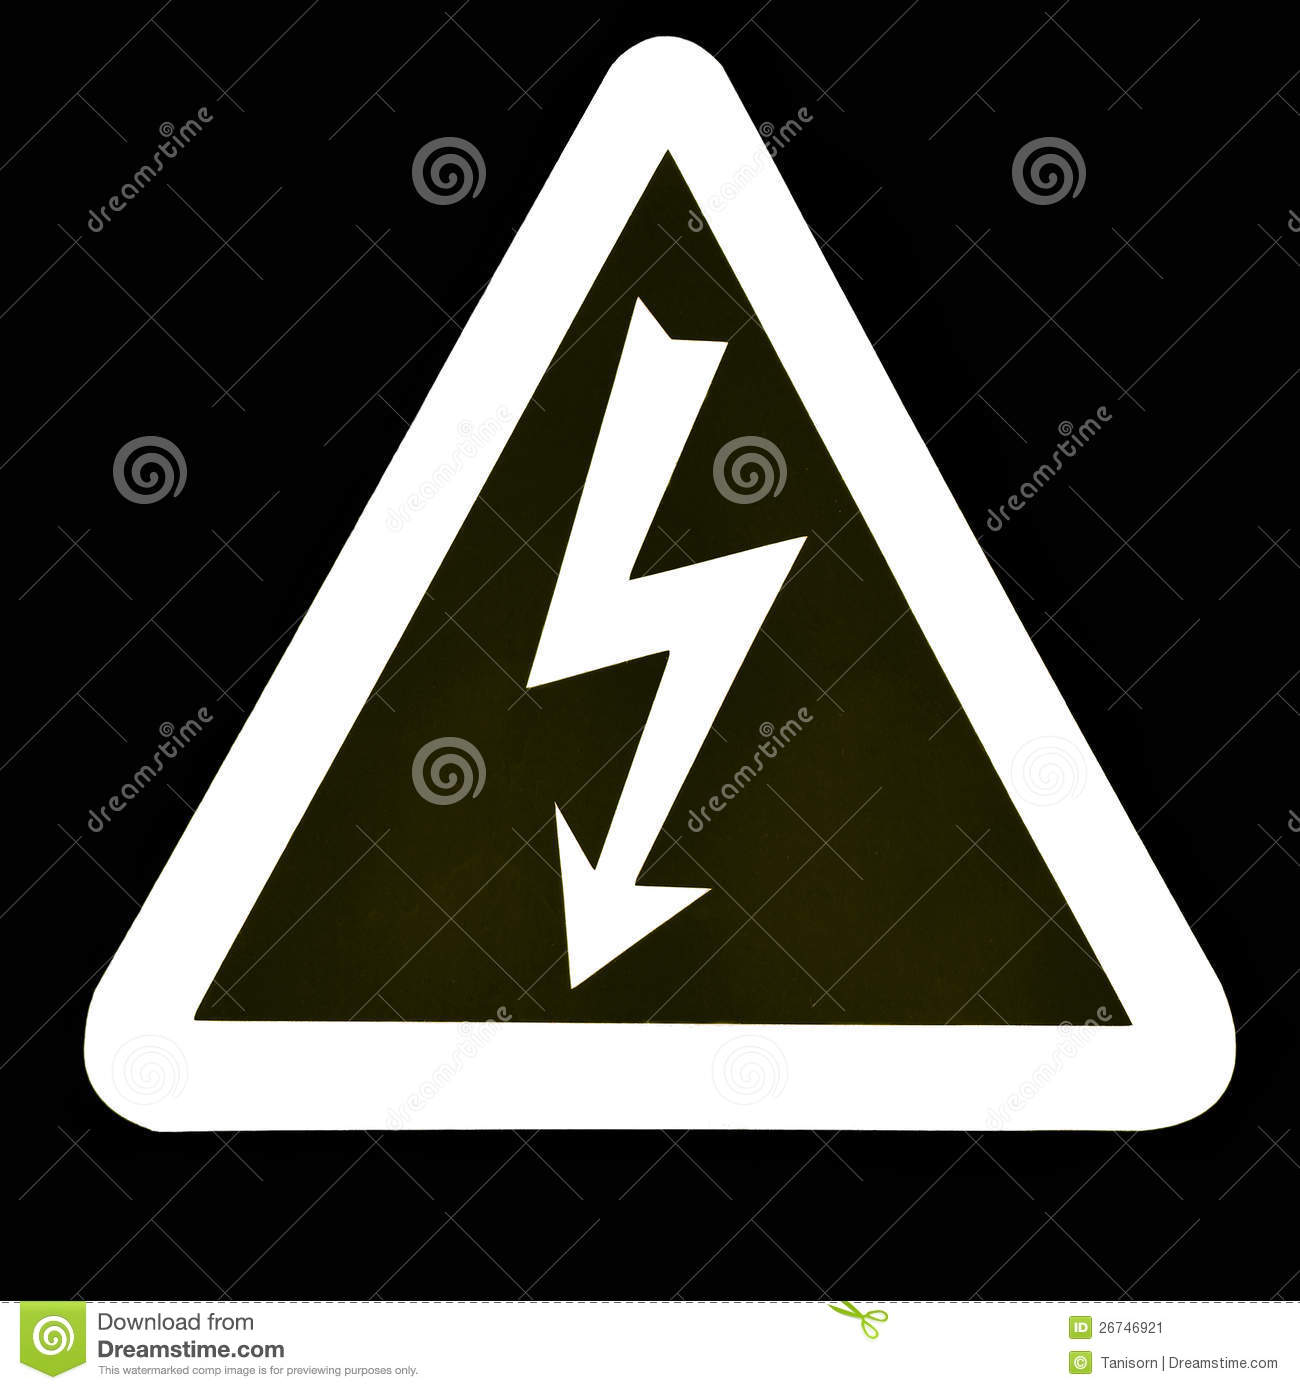 High Voltage Sign Stock Image - Image: 26746921: dreamstime.com/stock-image-high-voltage-sign-image26746921